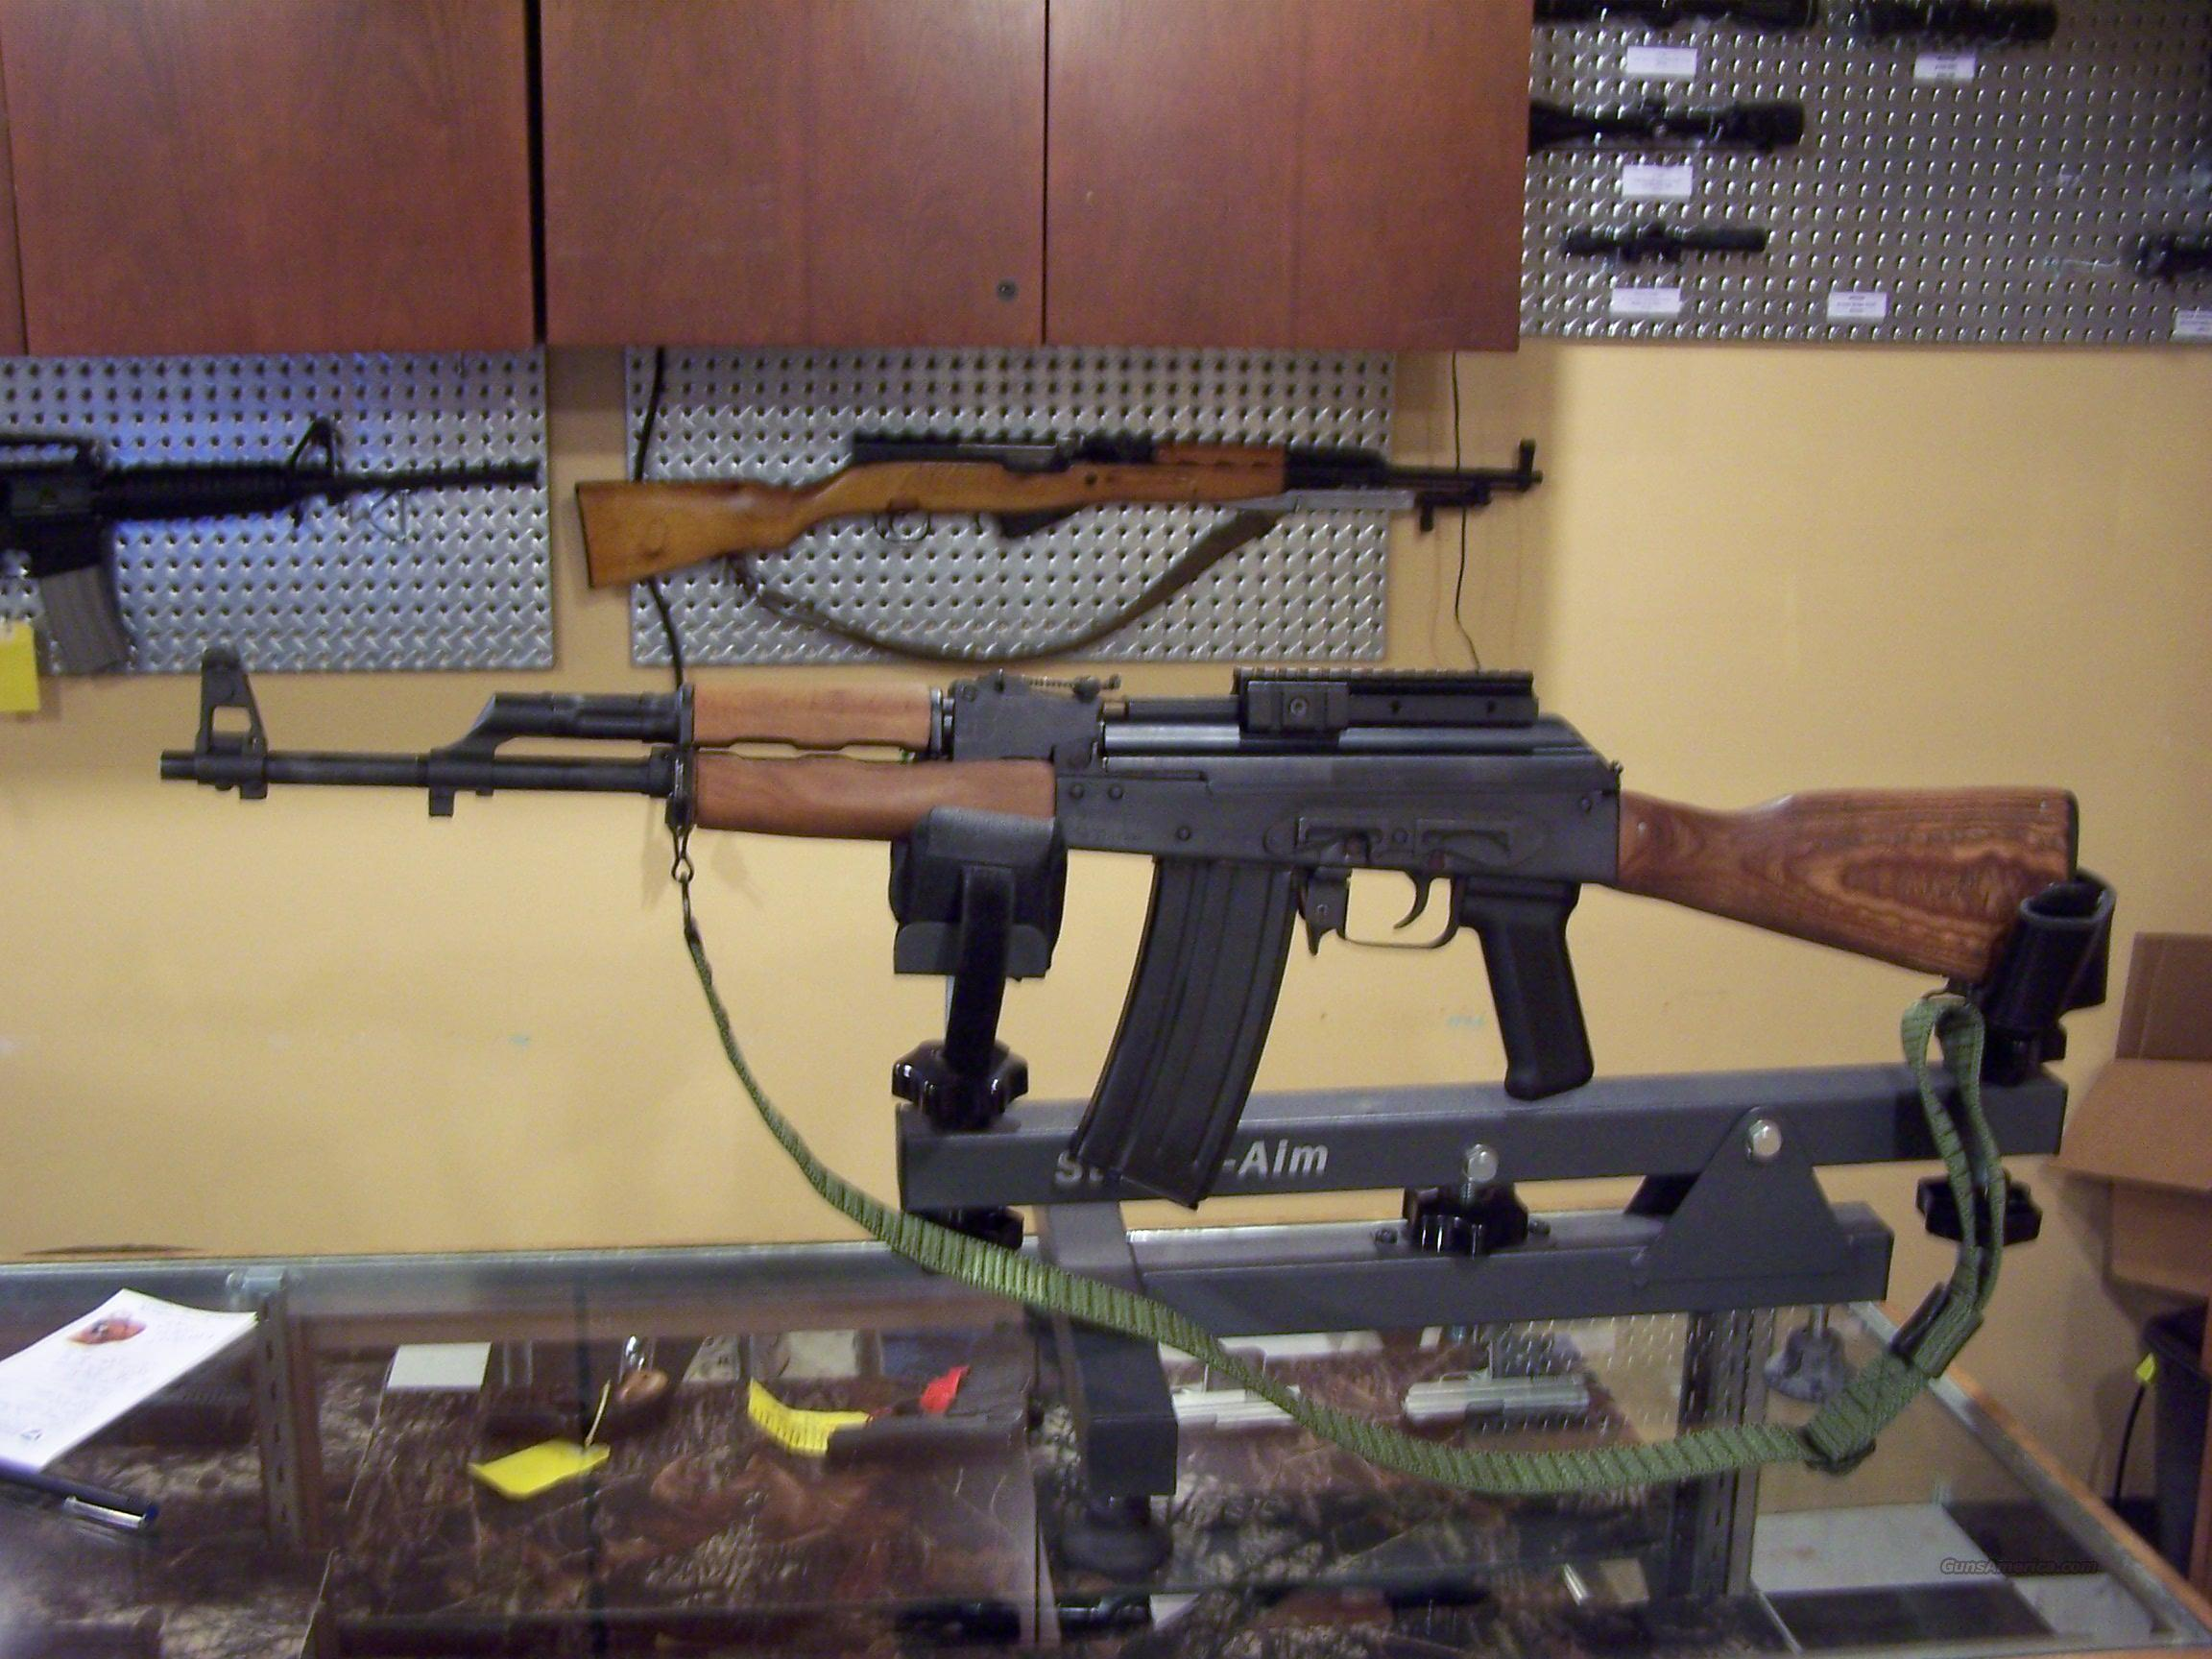 ROMANIAN WASR 3 AK47 IN 5.56X45 (.223)!  BLACK FRIDAY SPECIAL!  Guns > Rifles > AK-47 Rifles (and copies) > Full Stock